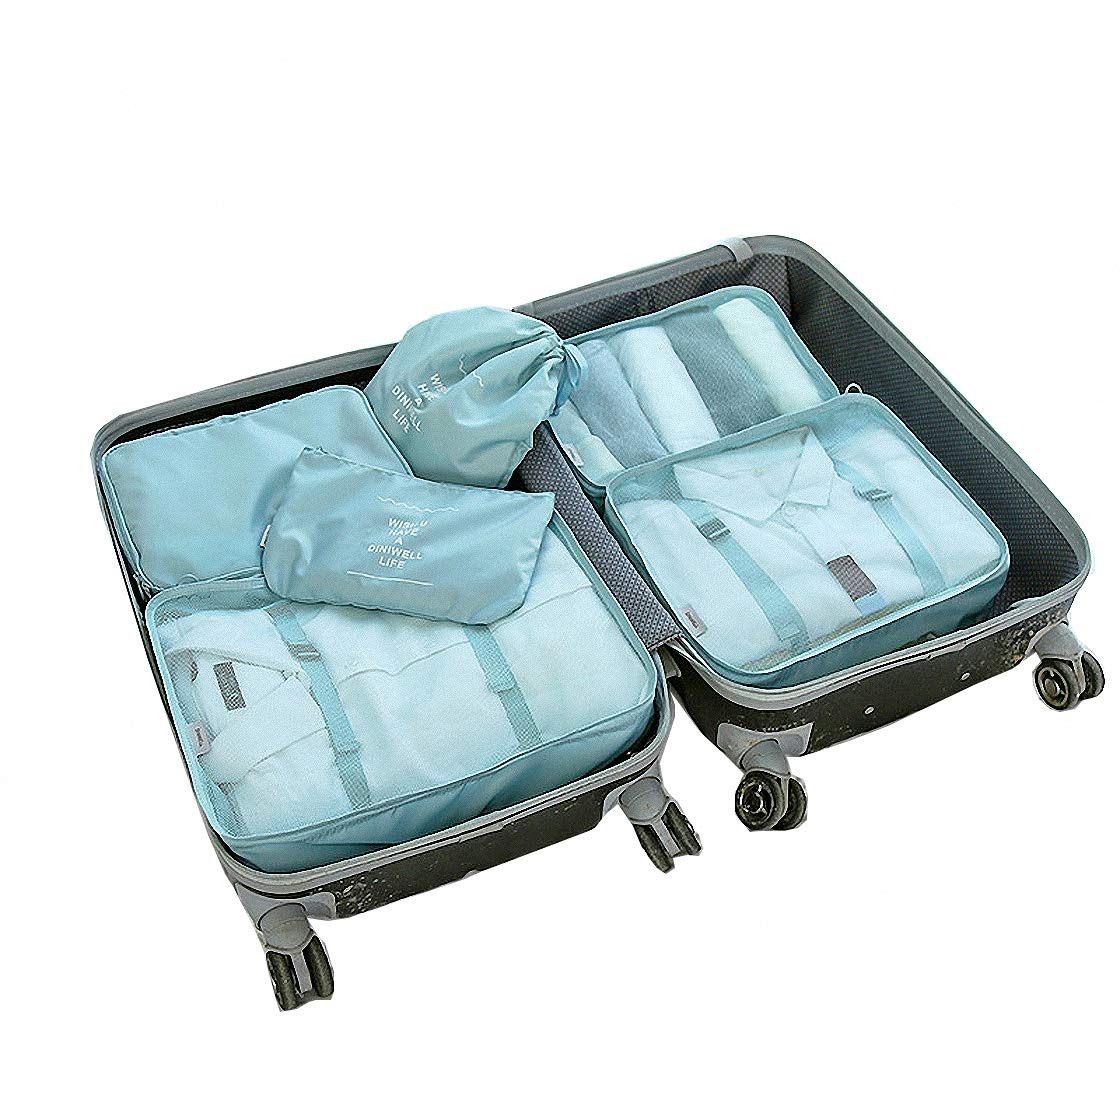 Packing Organizers - Clothing Cubes Shoe Bags Laundry Pouches For Travel Suitcase Luggage, Storage Organizer 6 Set Color Cyan